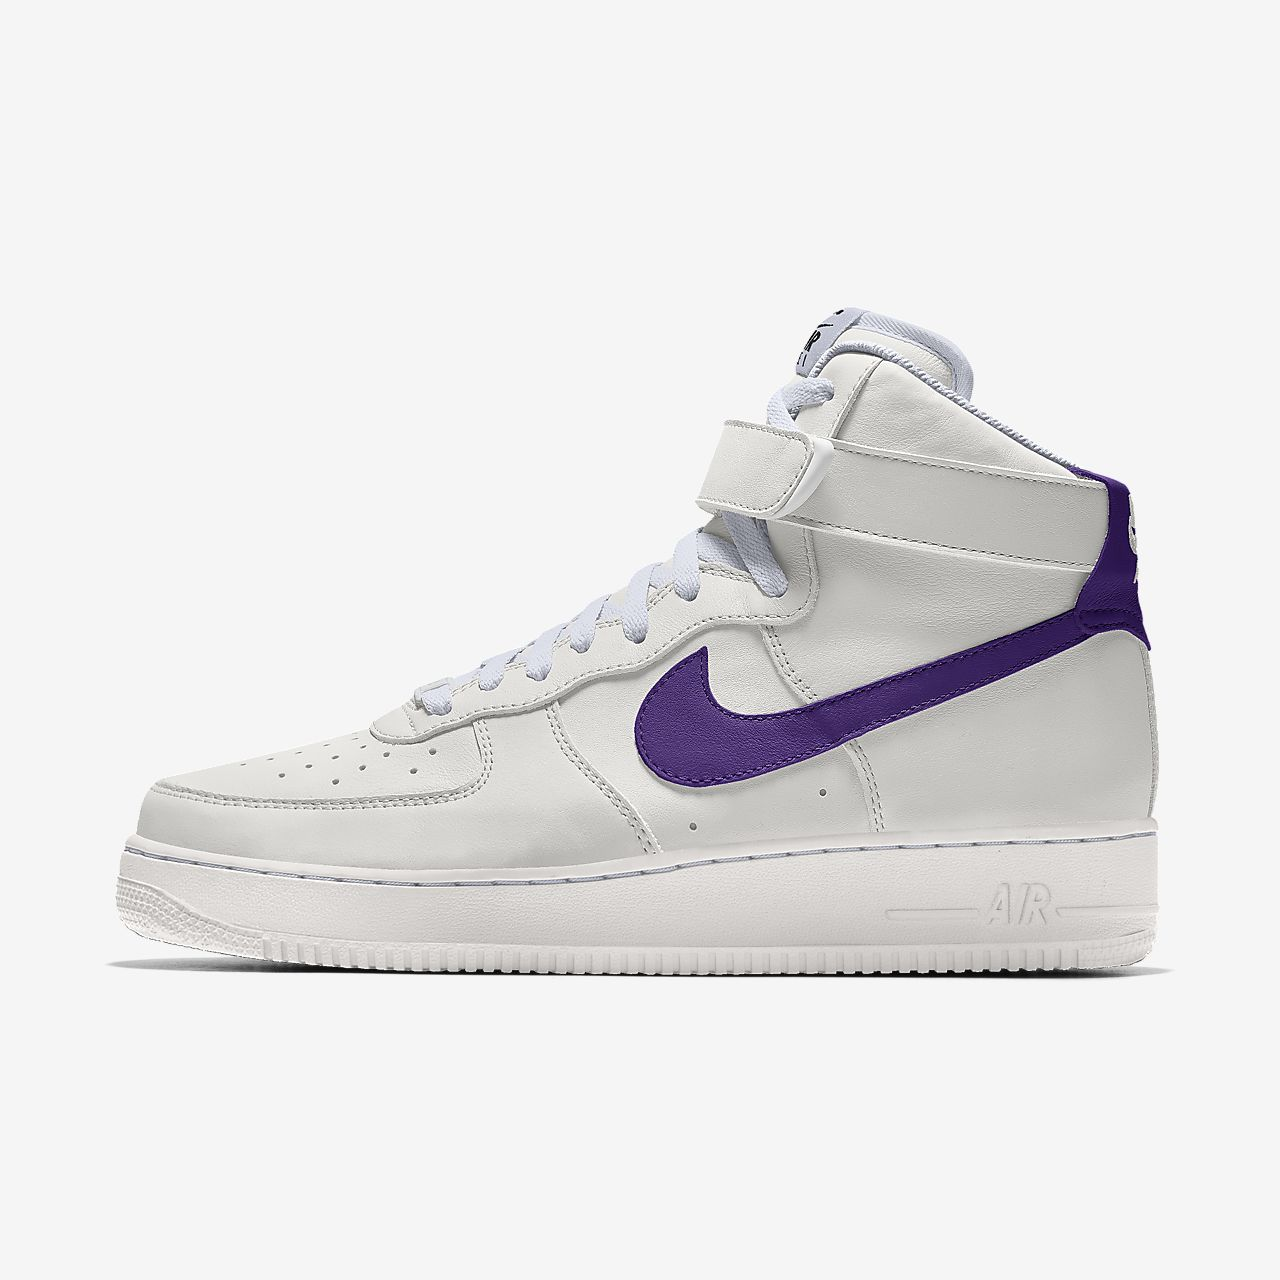 Nike Air Force 1 High By You Zapatillas personalizables - Hombre